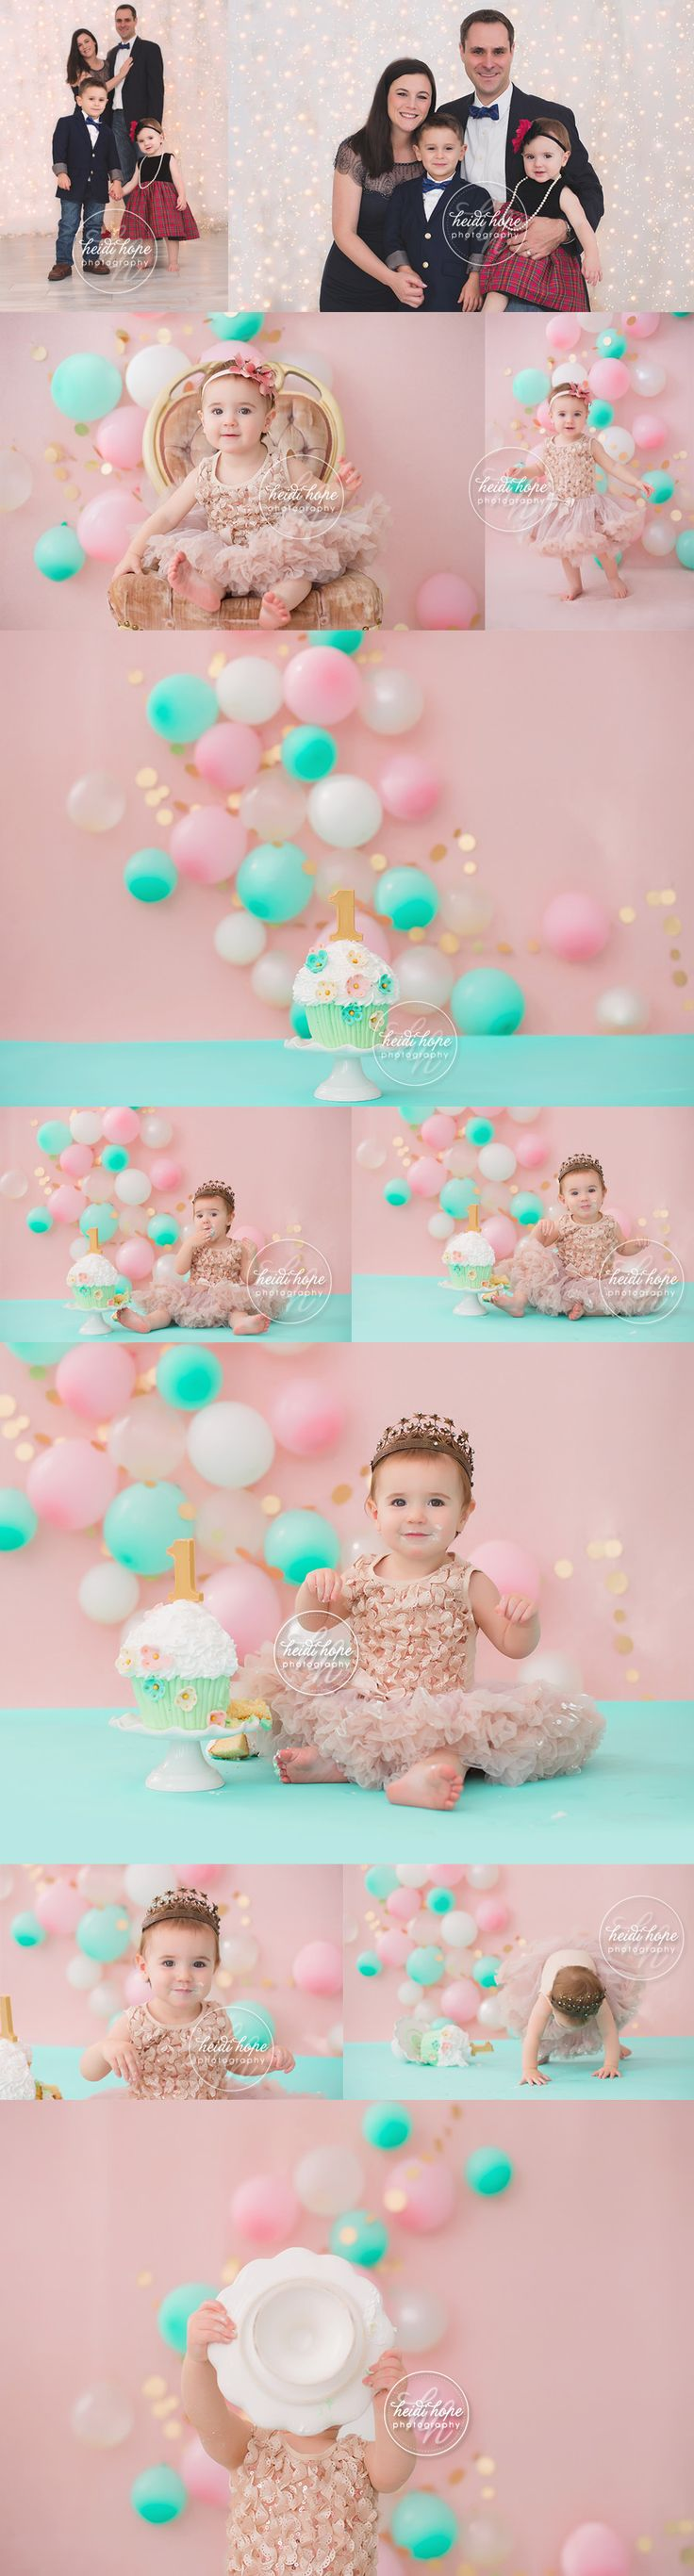 Celebrating first birthday with a pink, gold and mint green cakesmash fit for a princess! | Heidi Hope Photography